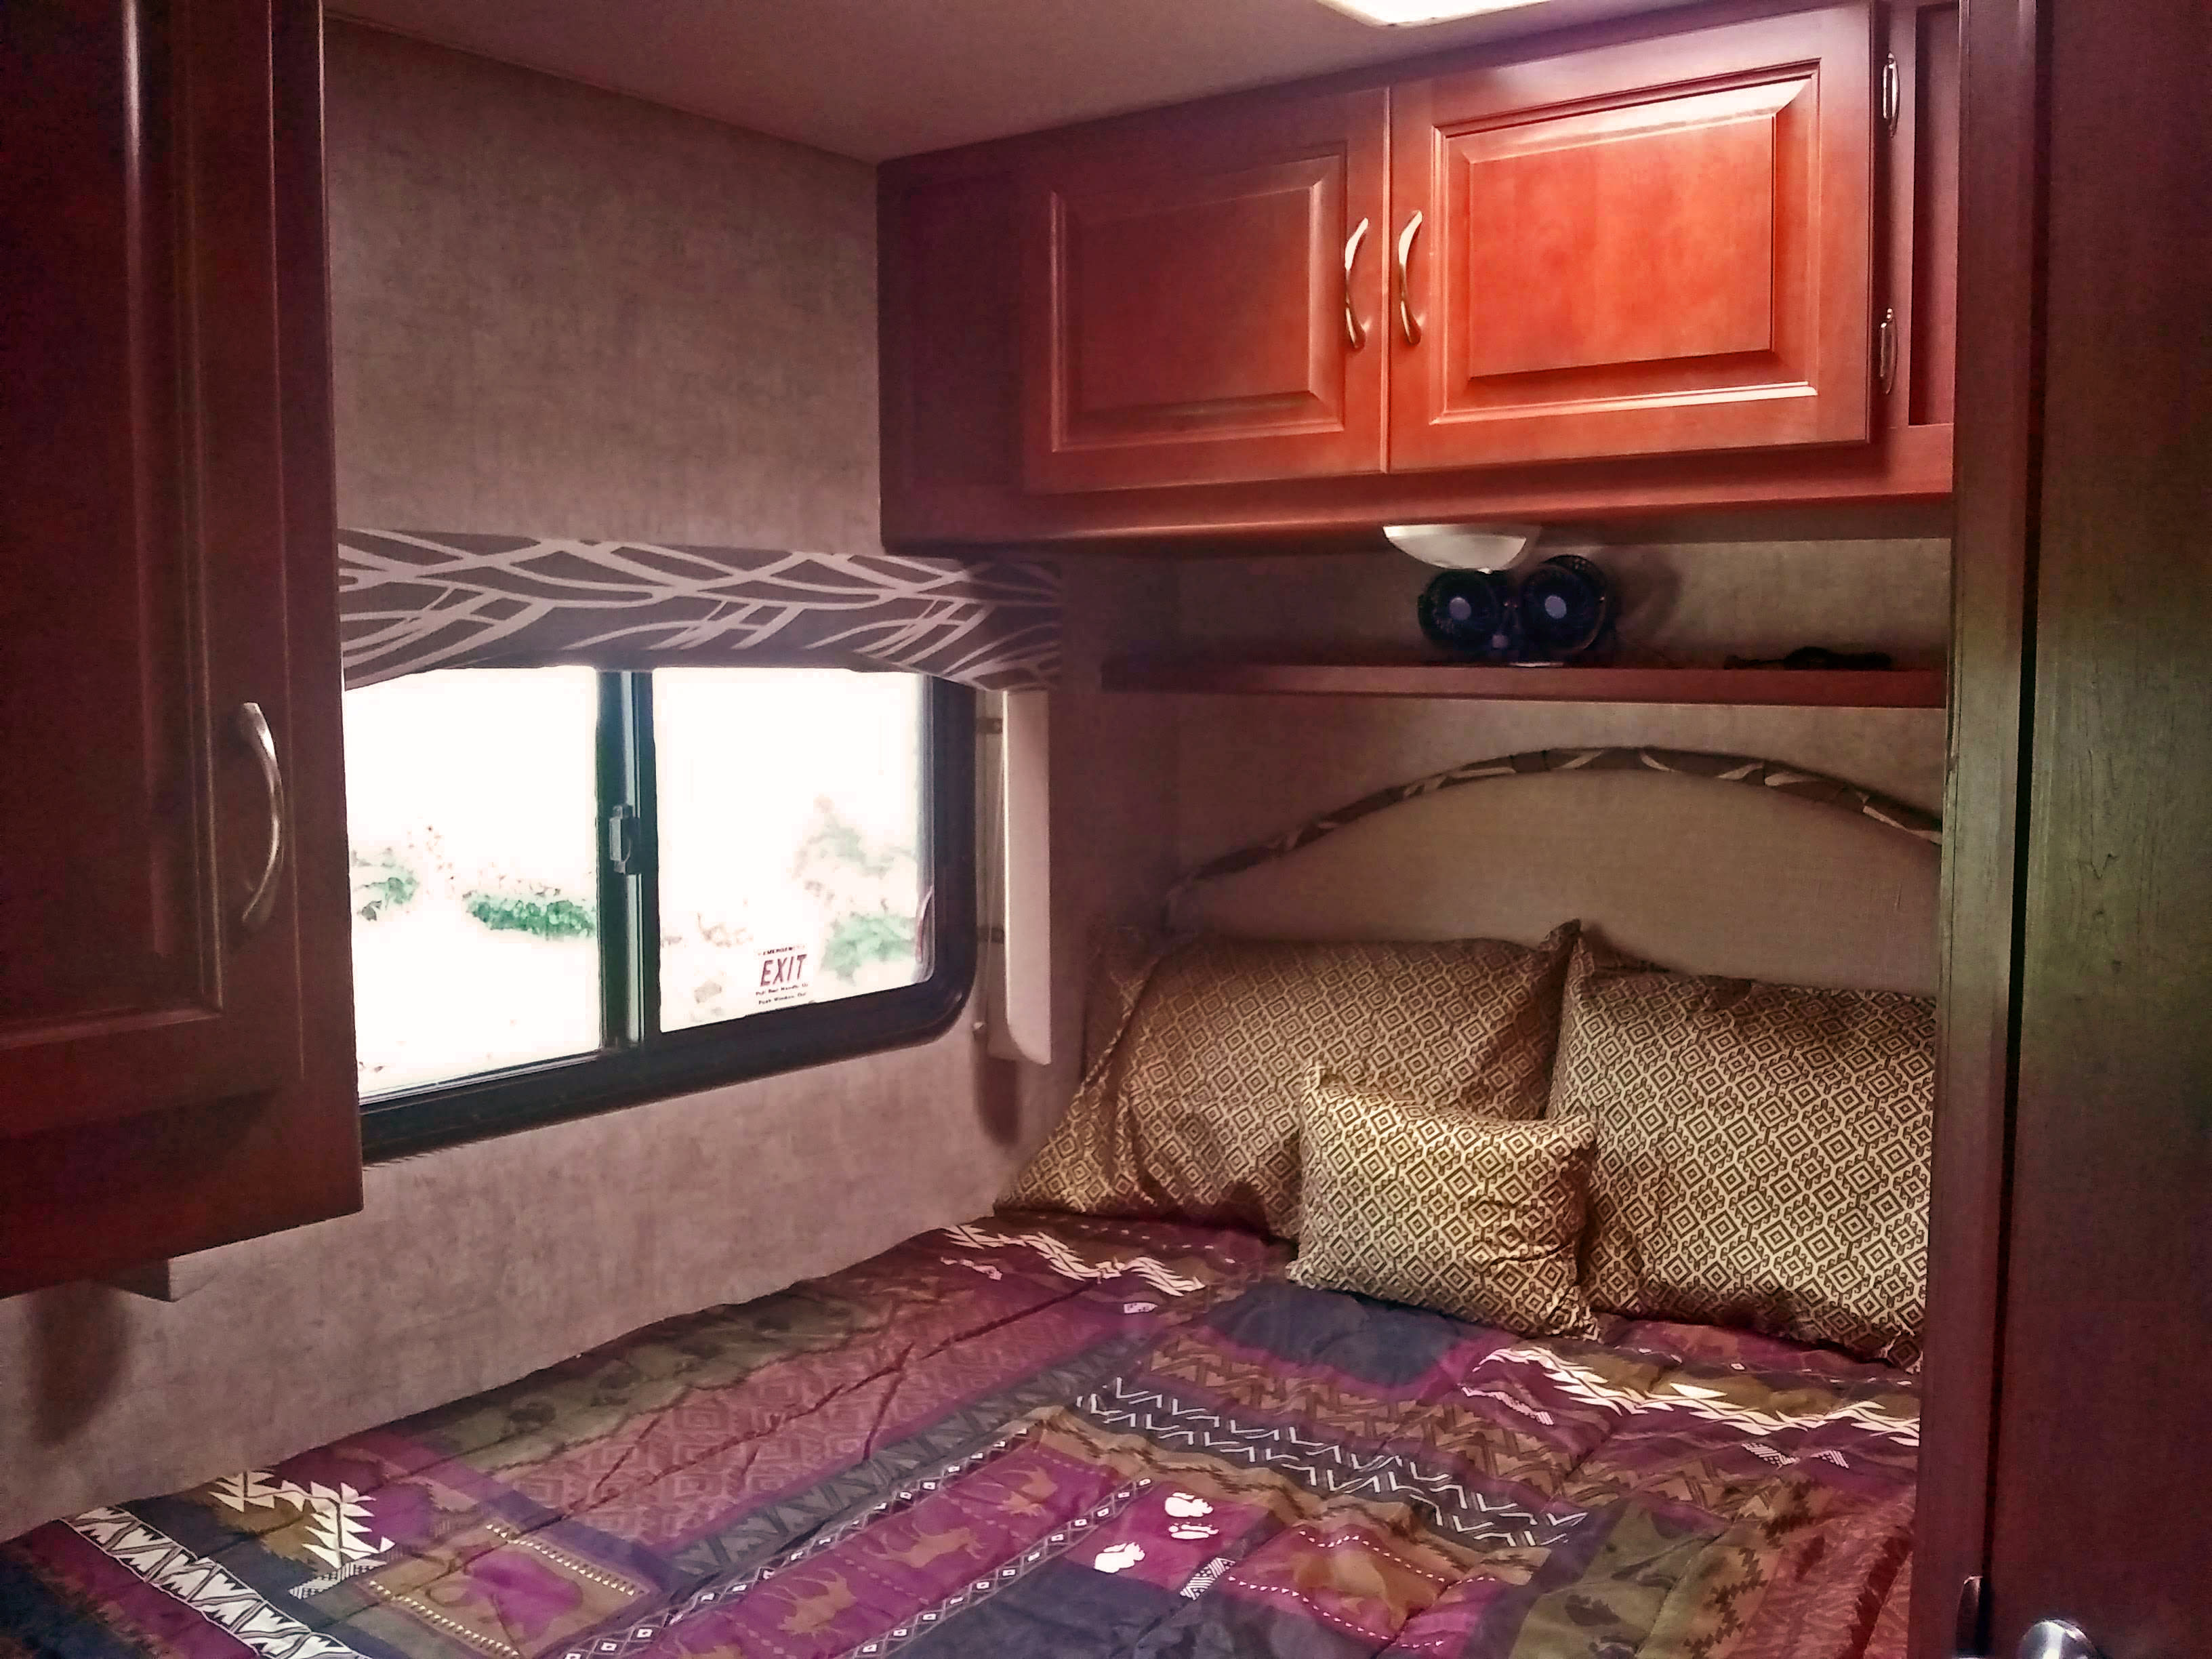 Fresh bedding included. Plenty of storage and device-charging spots.. Winnebago Itasca Spirit 2014